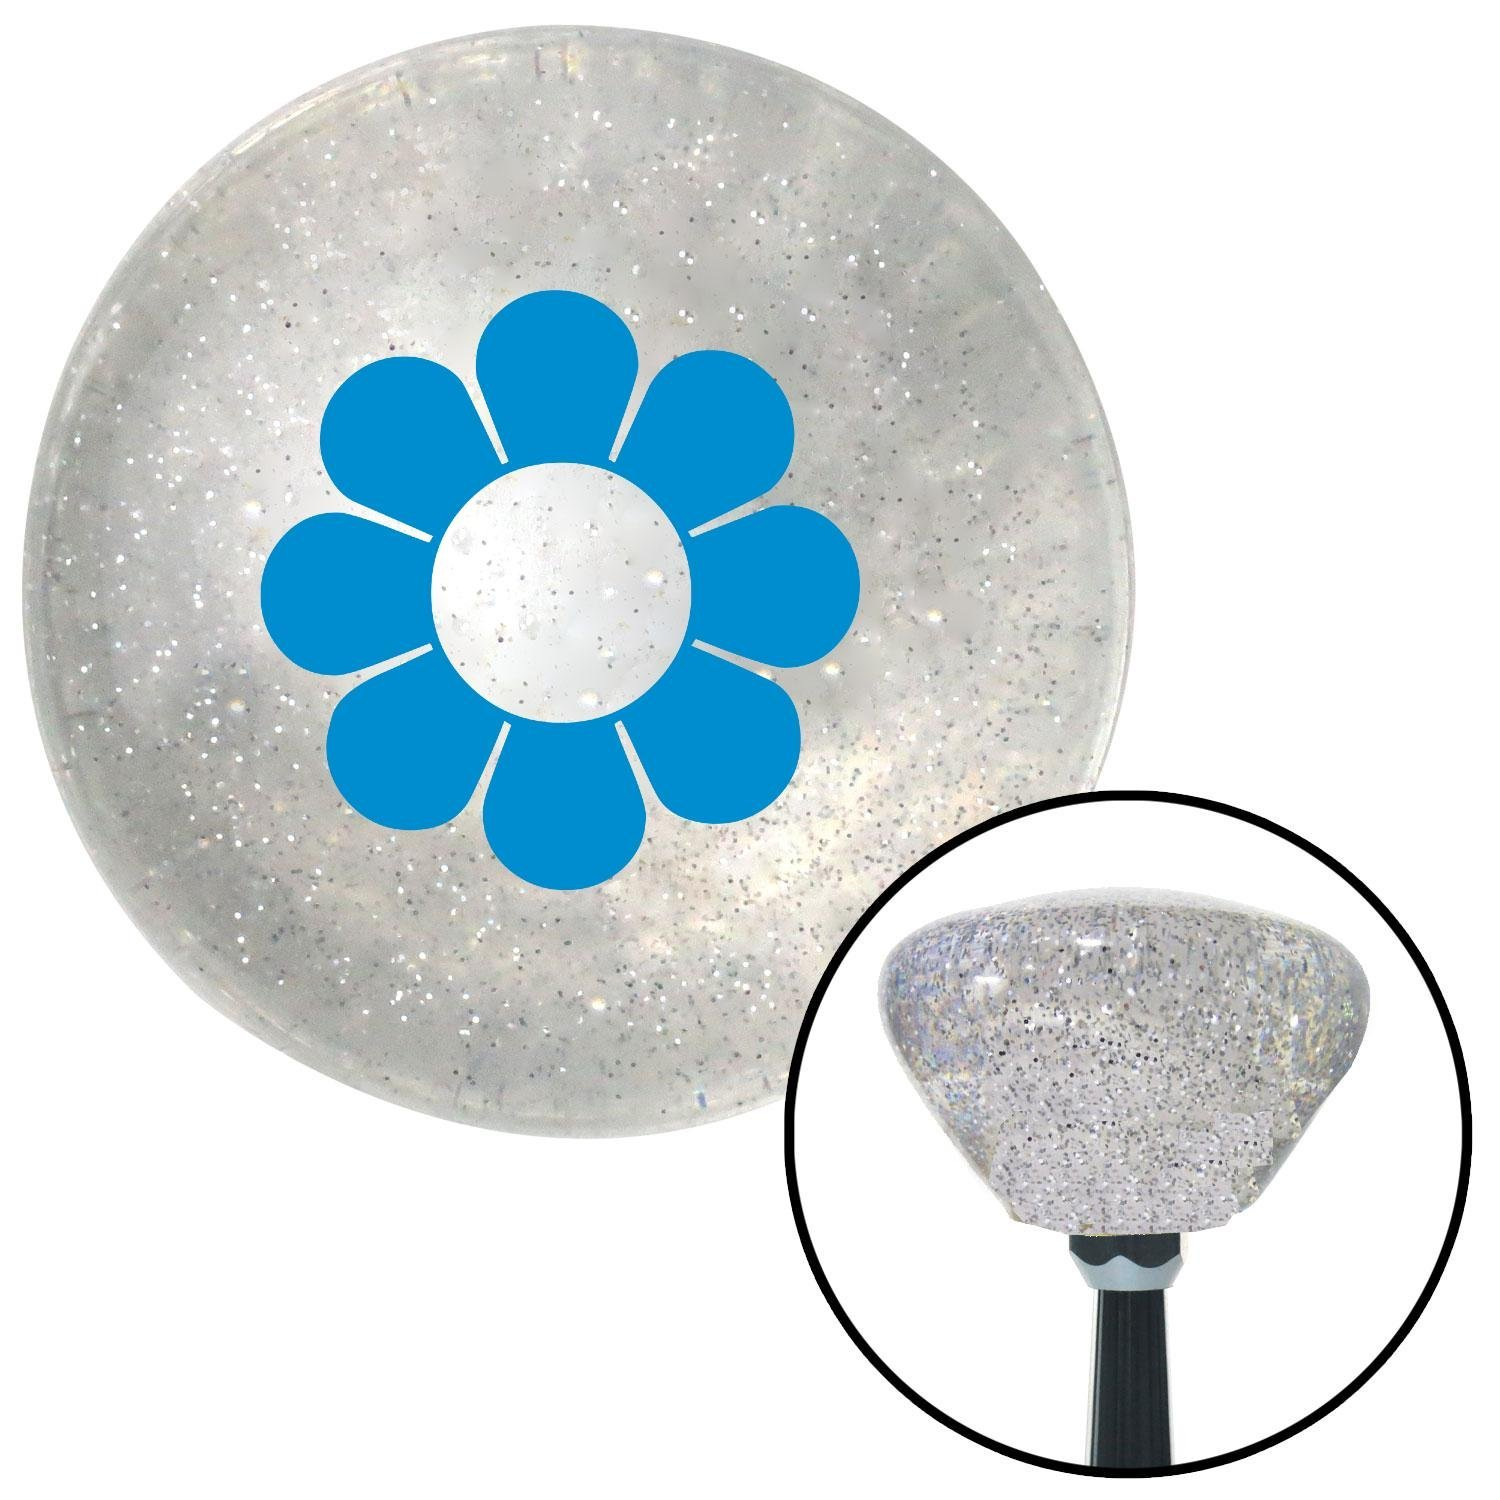 Blue Flower Power American Shifter 162021 Clear Retro Metal Flake Shift Knob with M16 x 1.5 Insert